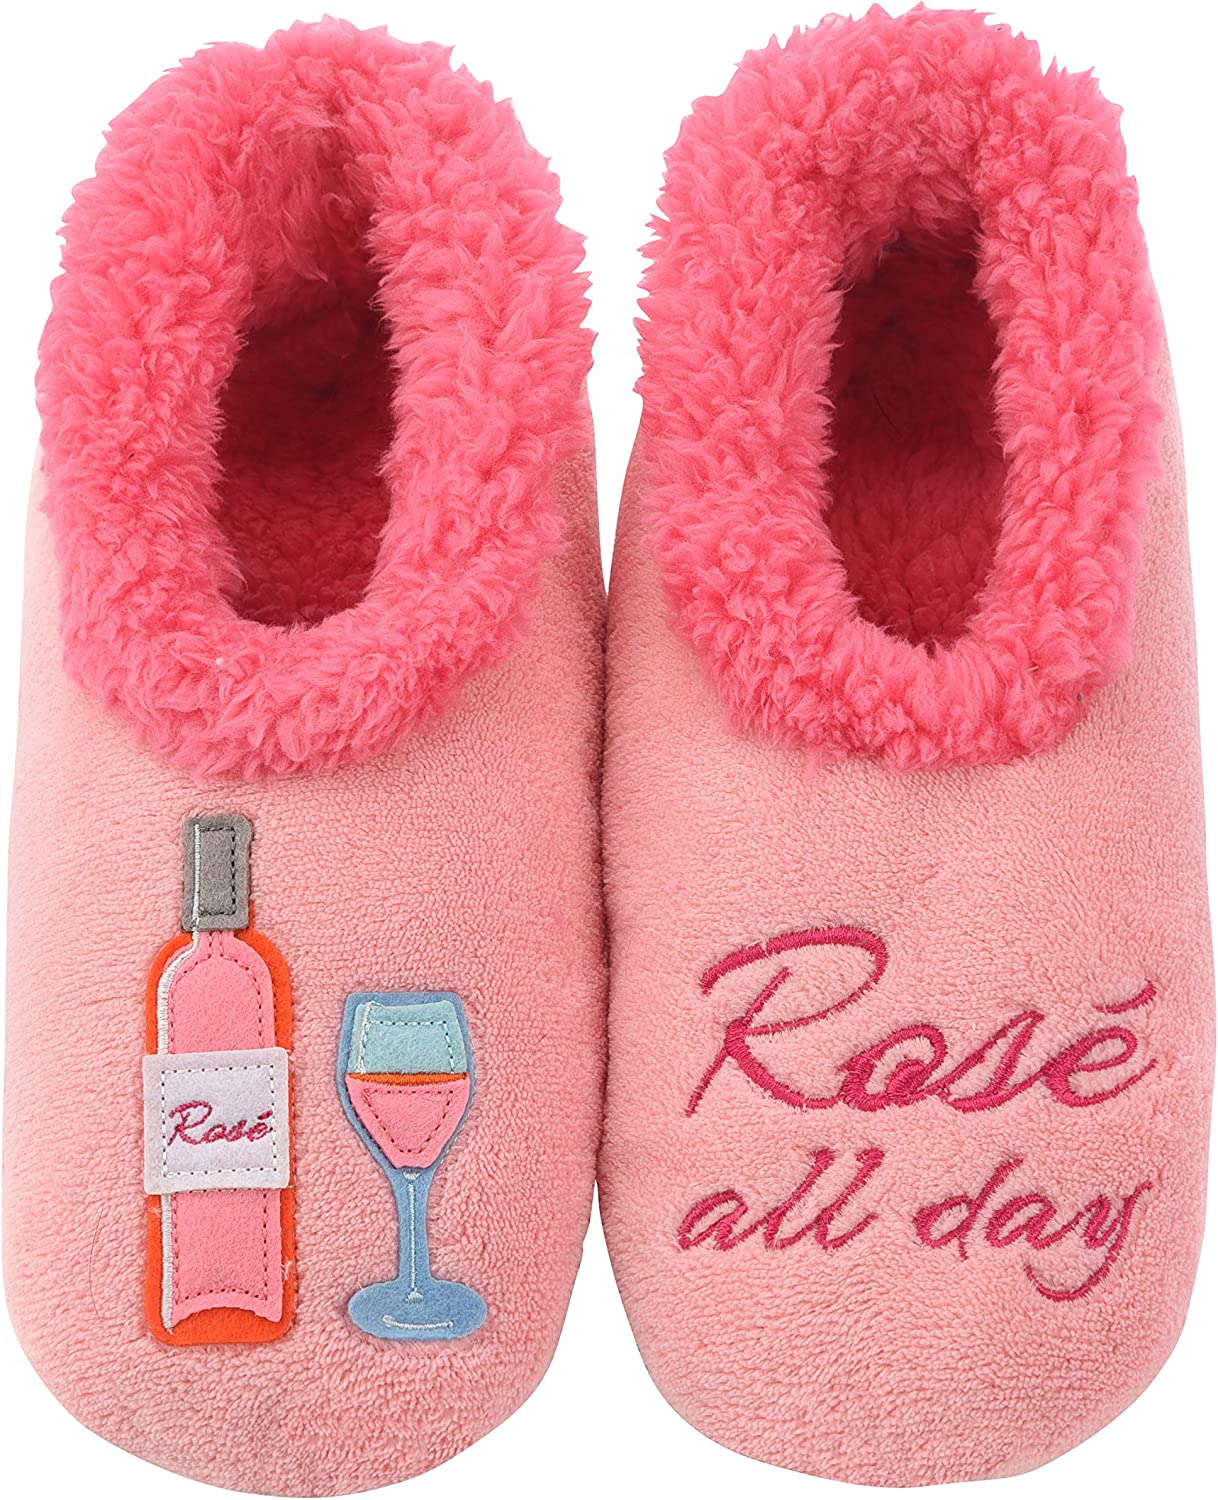 Snoozies Slippers for Women - Pairables Womens Slippers - Rose All Day